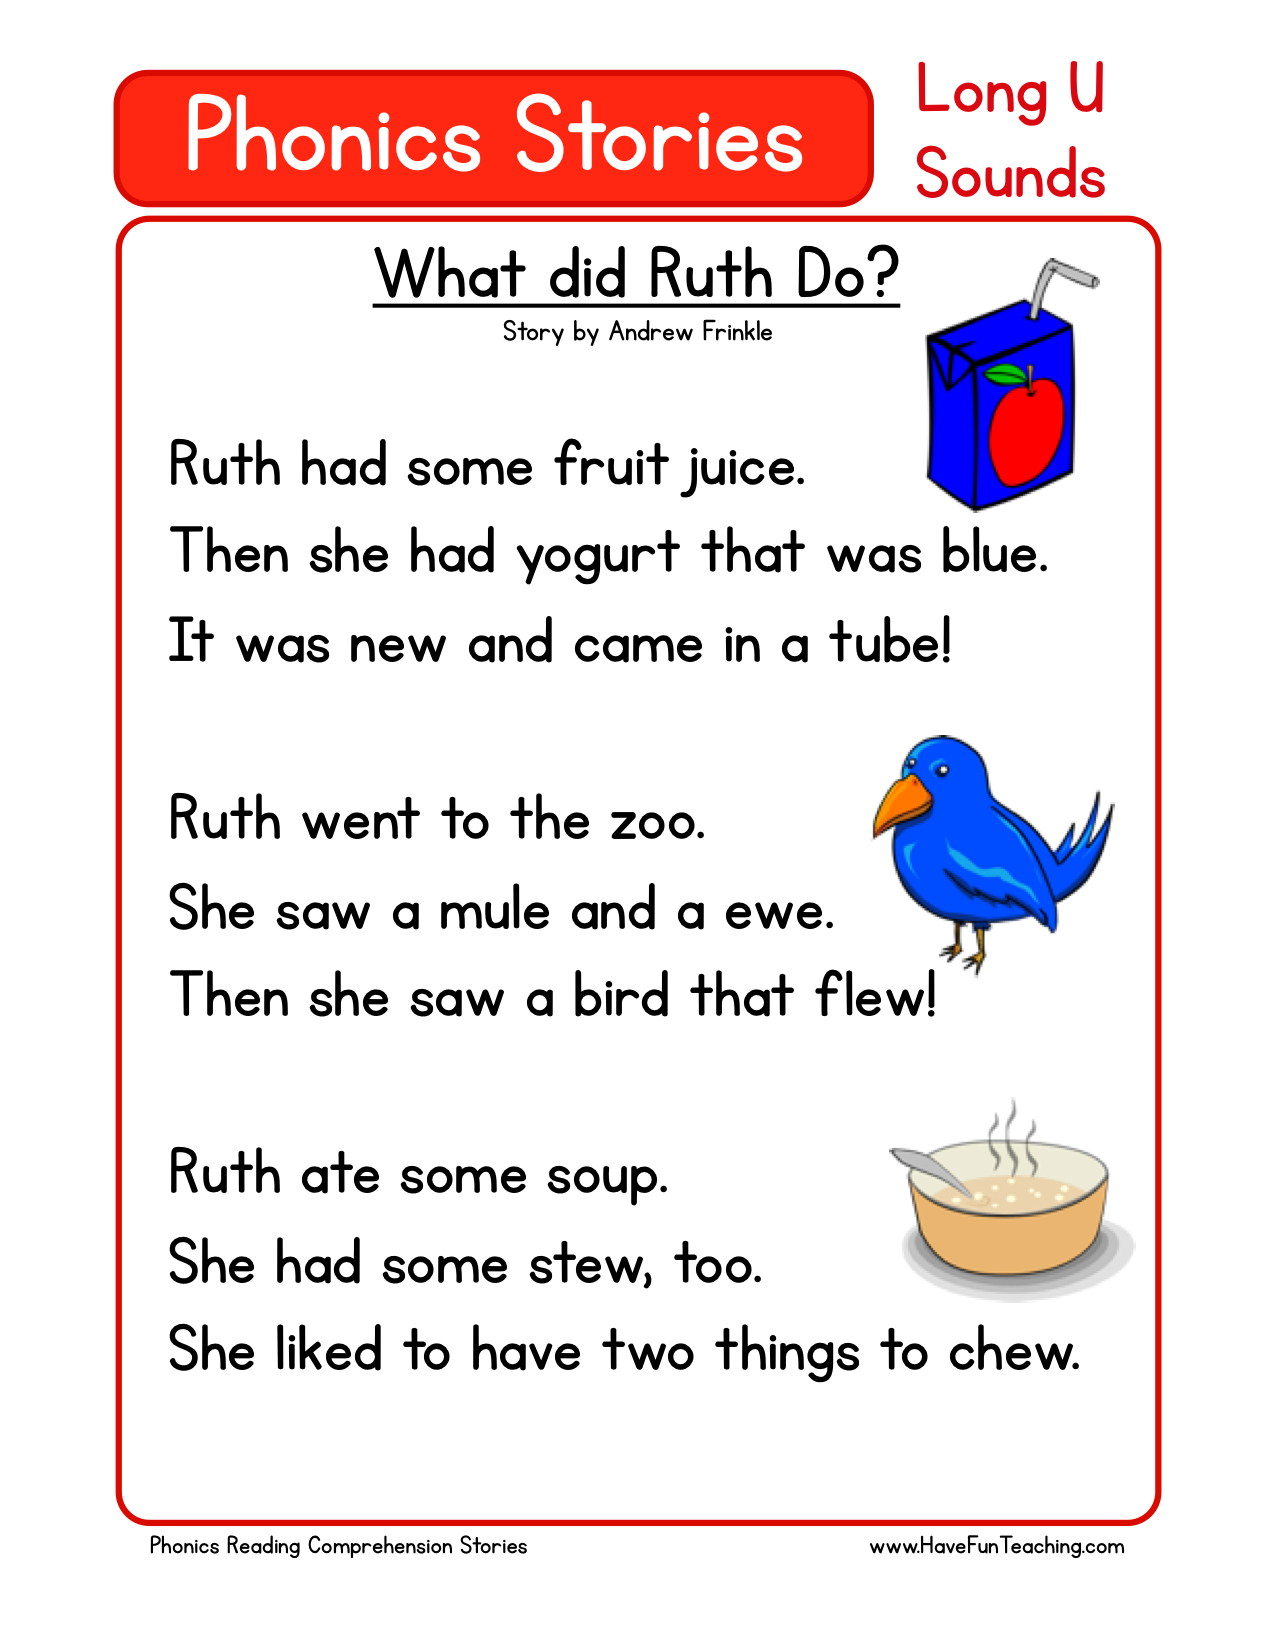 Worksheet Reading Comprehension For Preschool preschool reading comprehension worksheets download what did ruth do